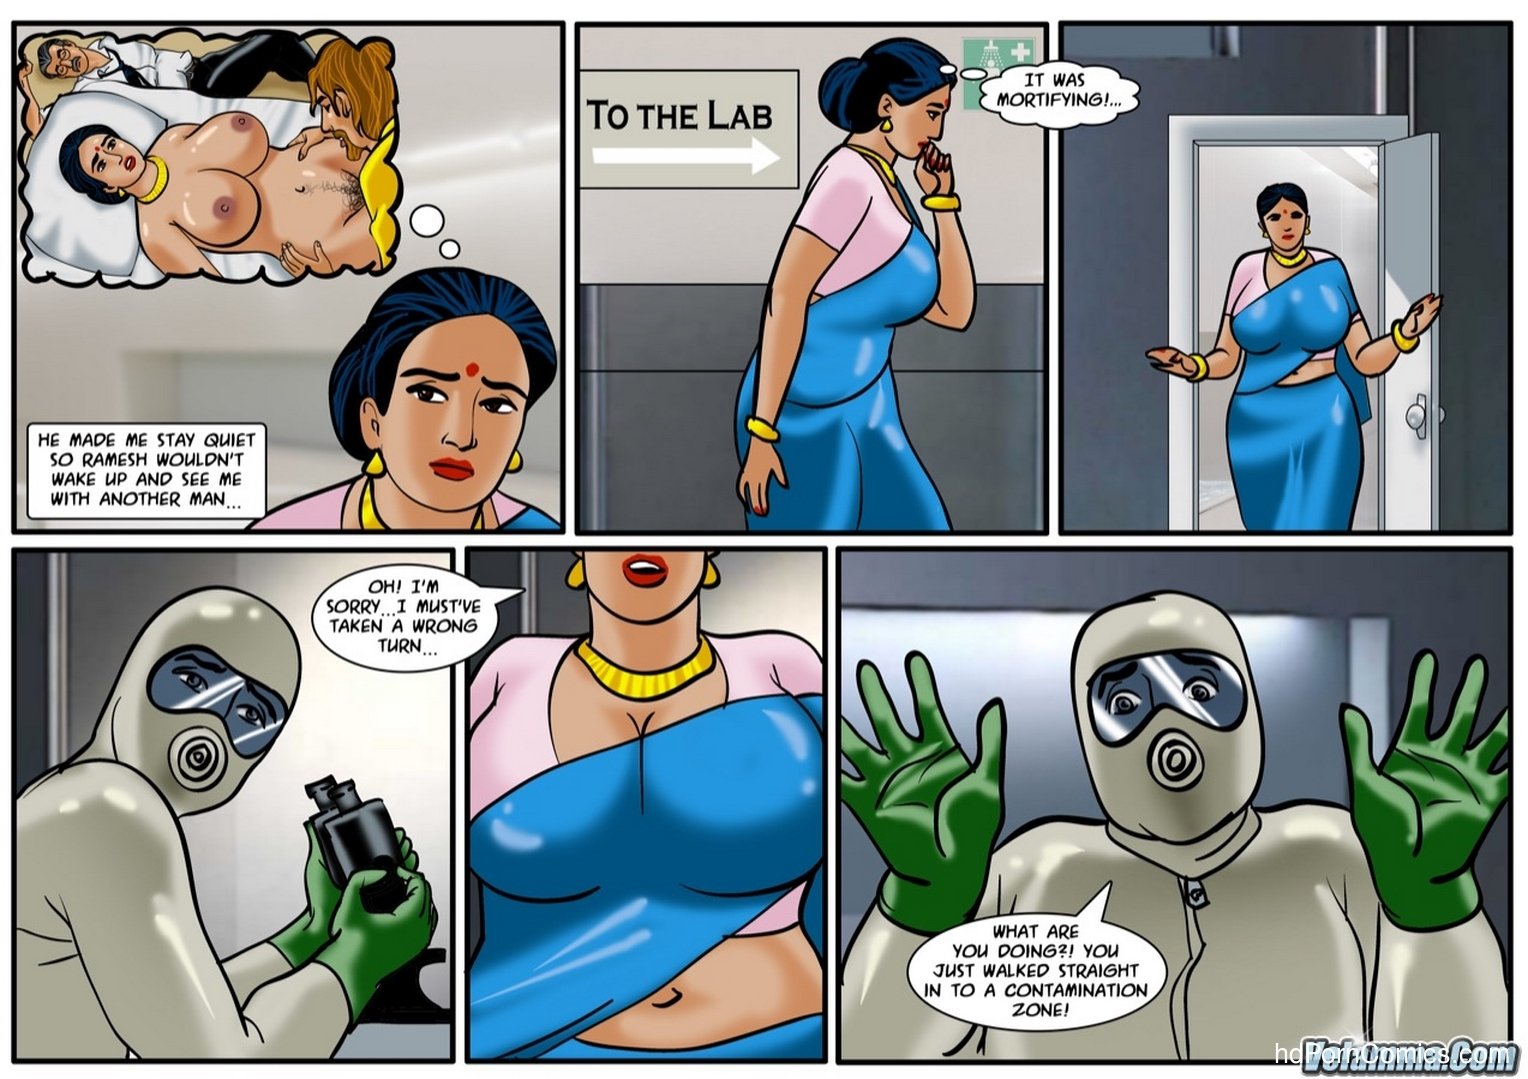 Velamma Episode 58 -Contaminated9 free sex comic